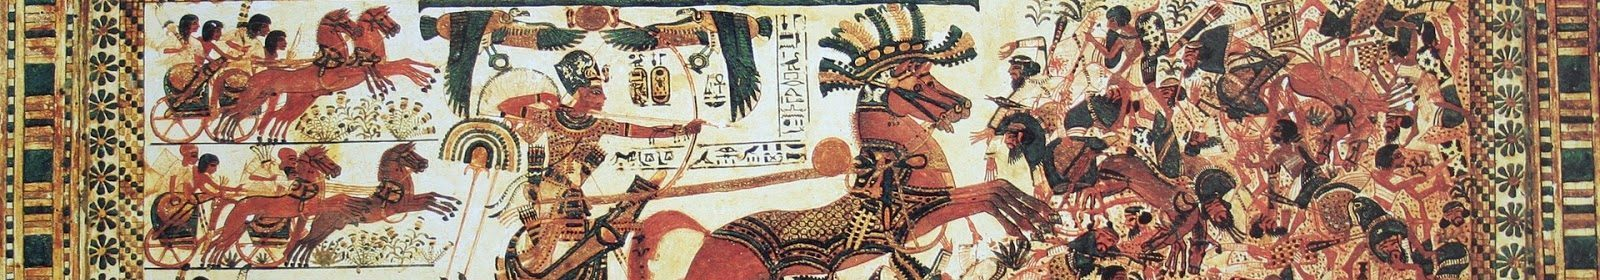 The Battle of Djahy of King Ramses III